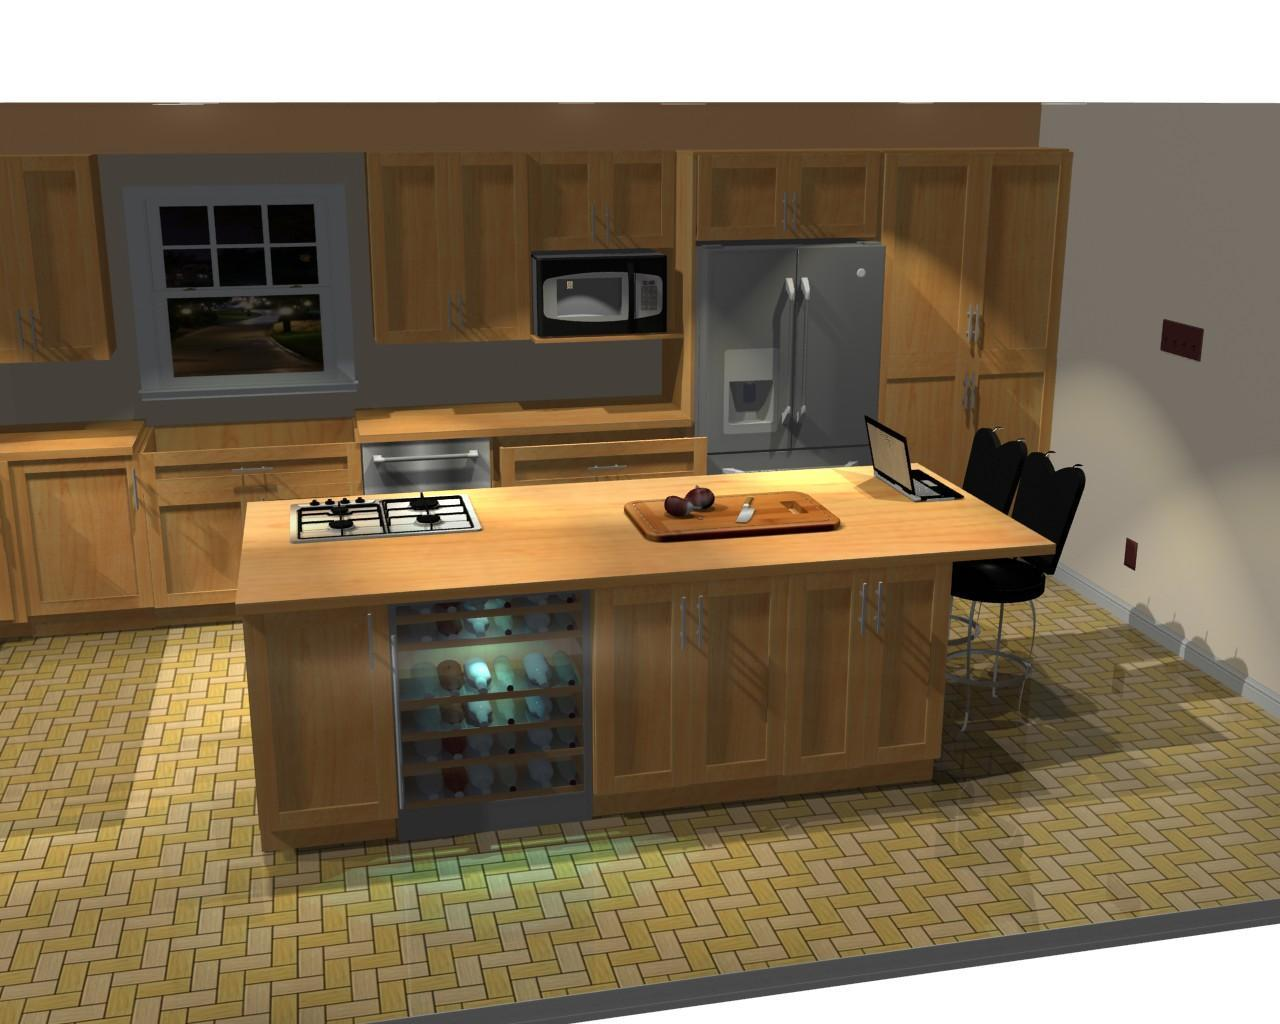 Cabinet design software Kitcad kitchen design software